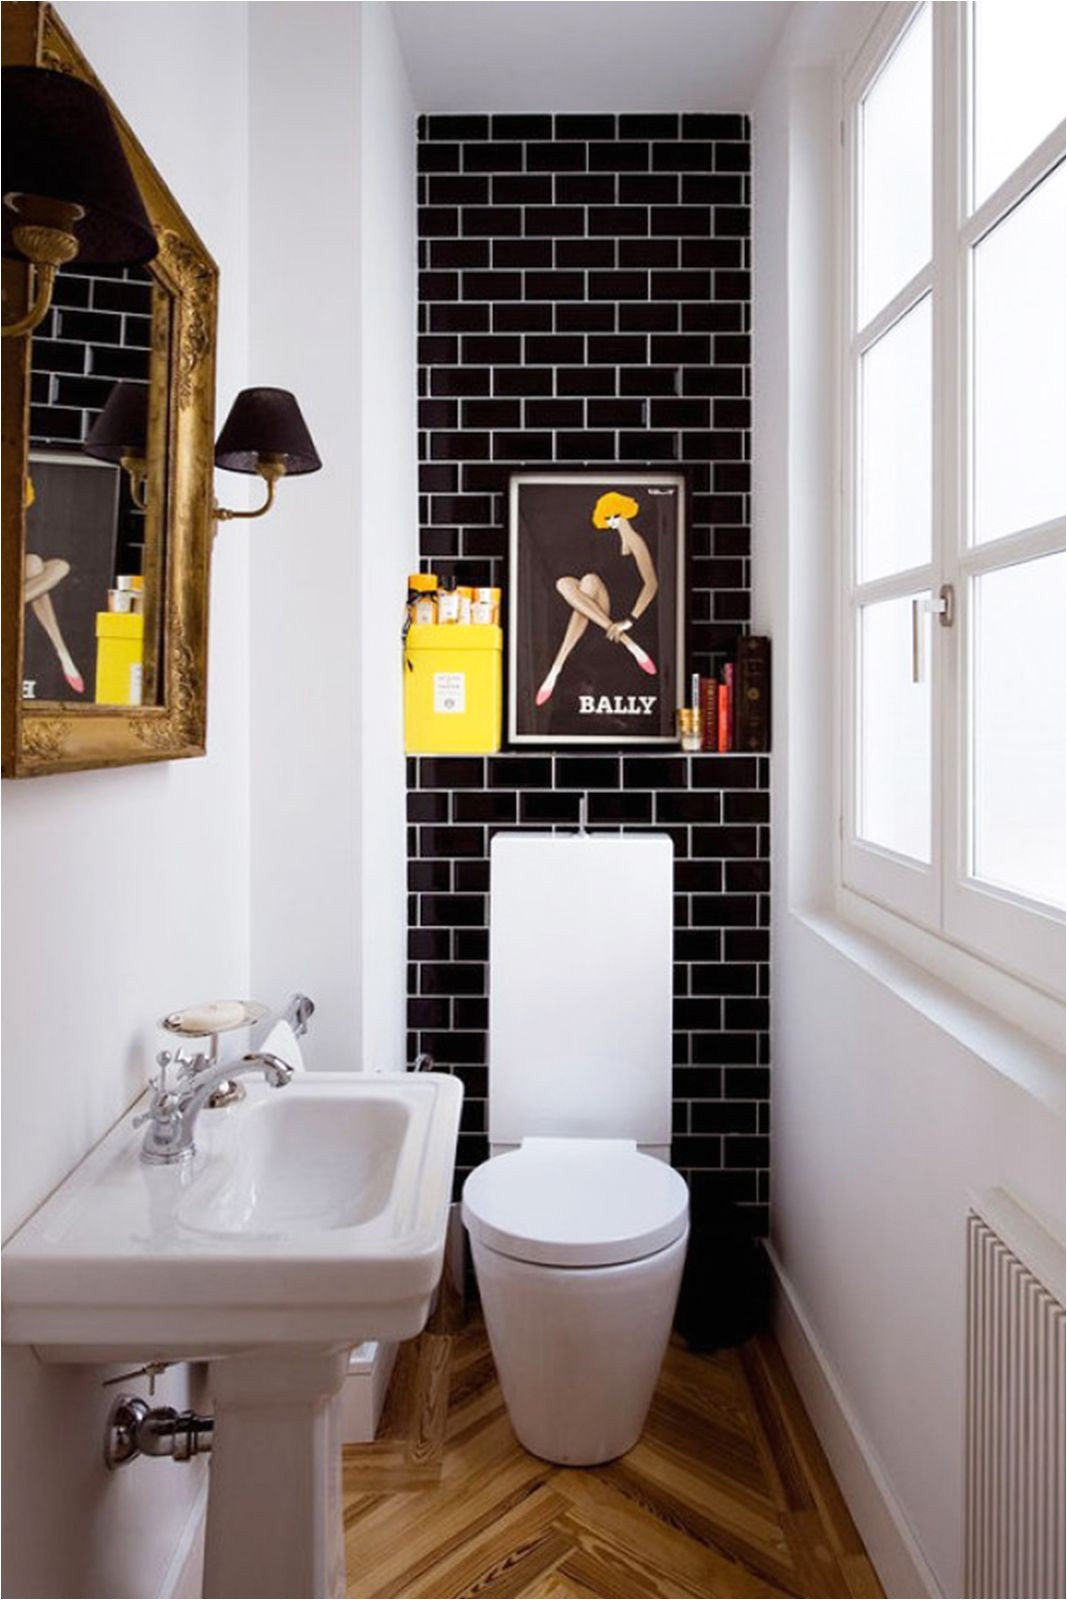 6 easy ways to make your small bathroom feel luxurious